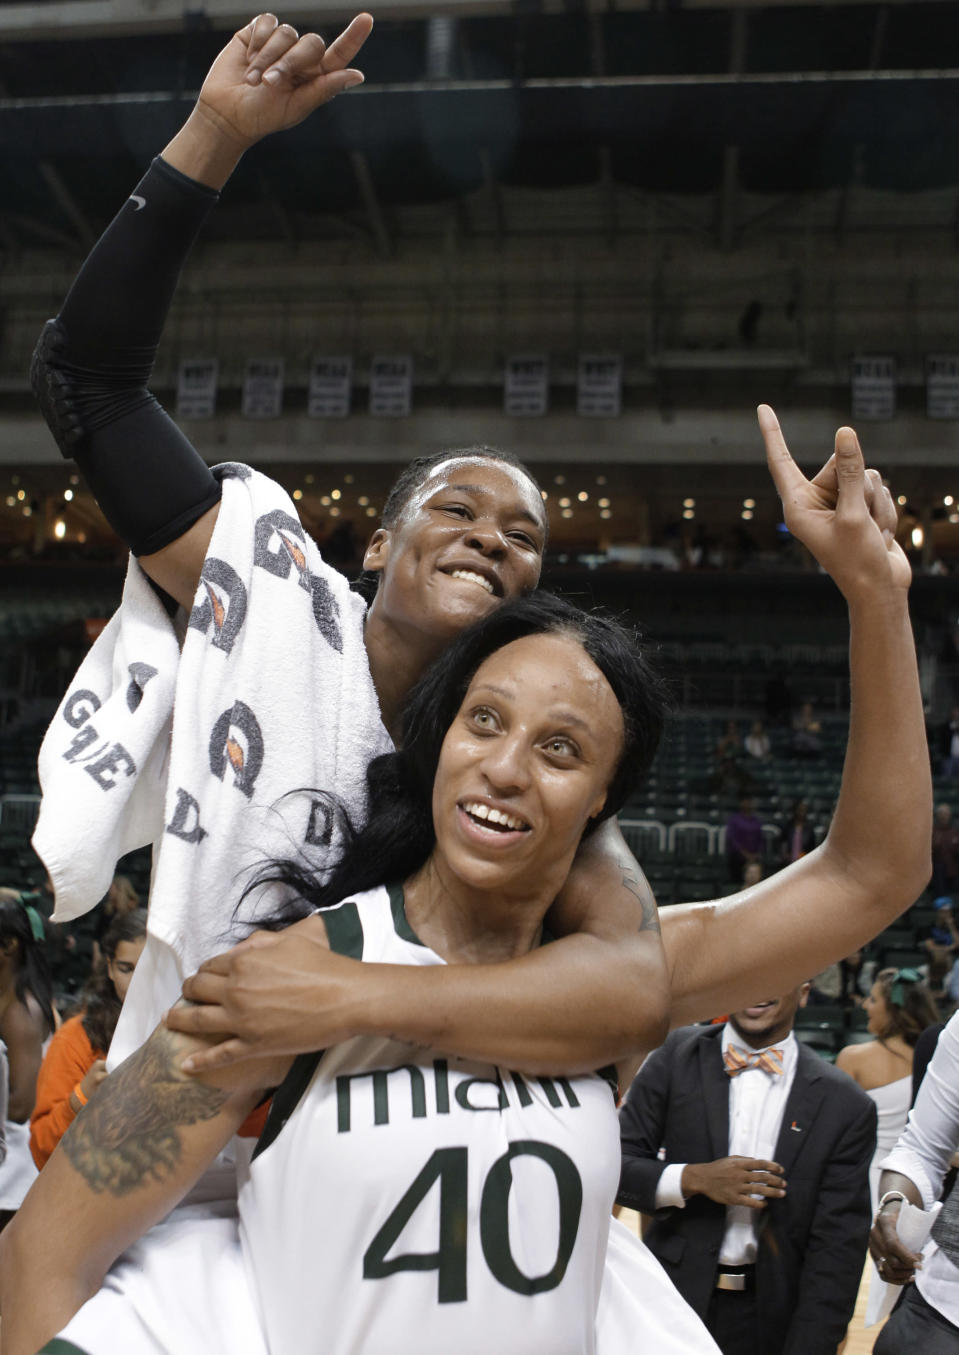 Miami's Shawnice Wilson (40) and and Maria Brown celebrate after Miami defeated Duke 69-65 during an NCAA college basketball game in Coral Gables, Fla., Thursday, Feb. 28, 2013. (AP Photo/Luis M. Alvarez)